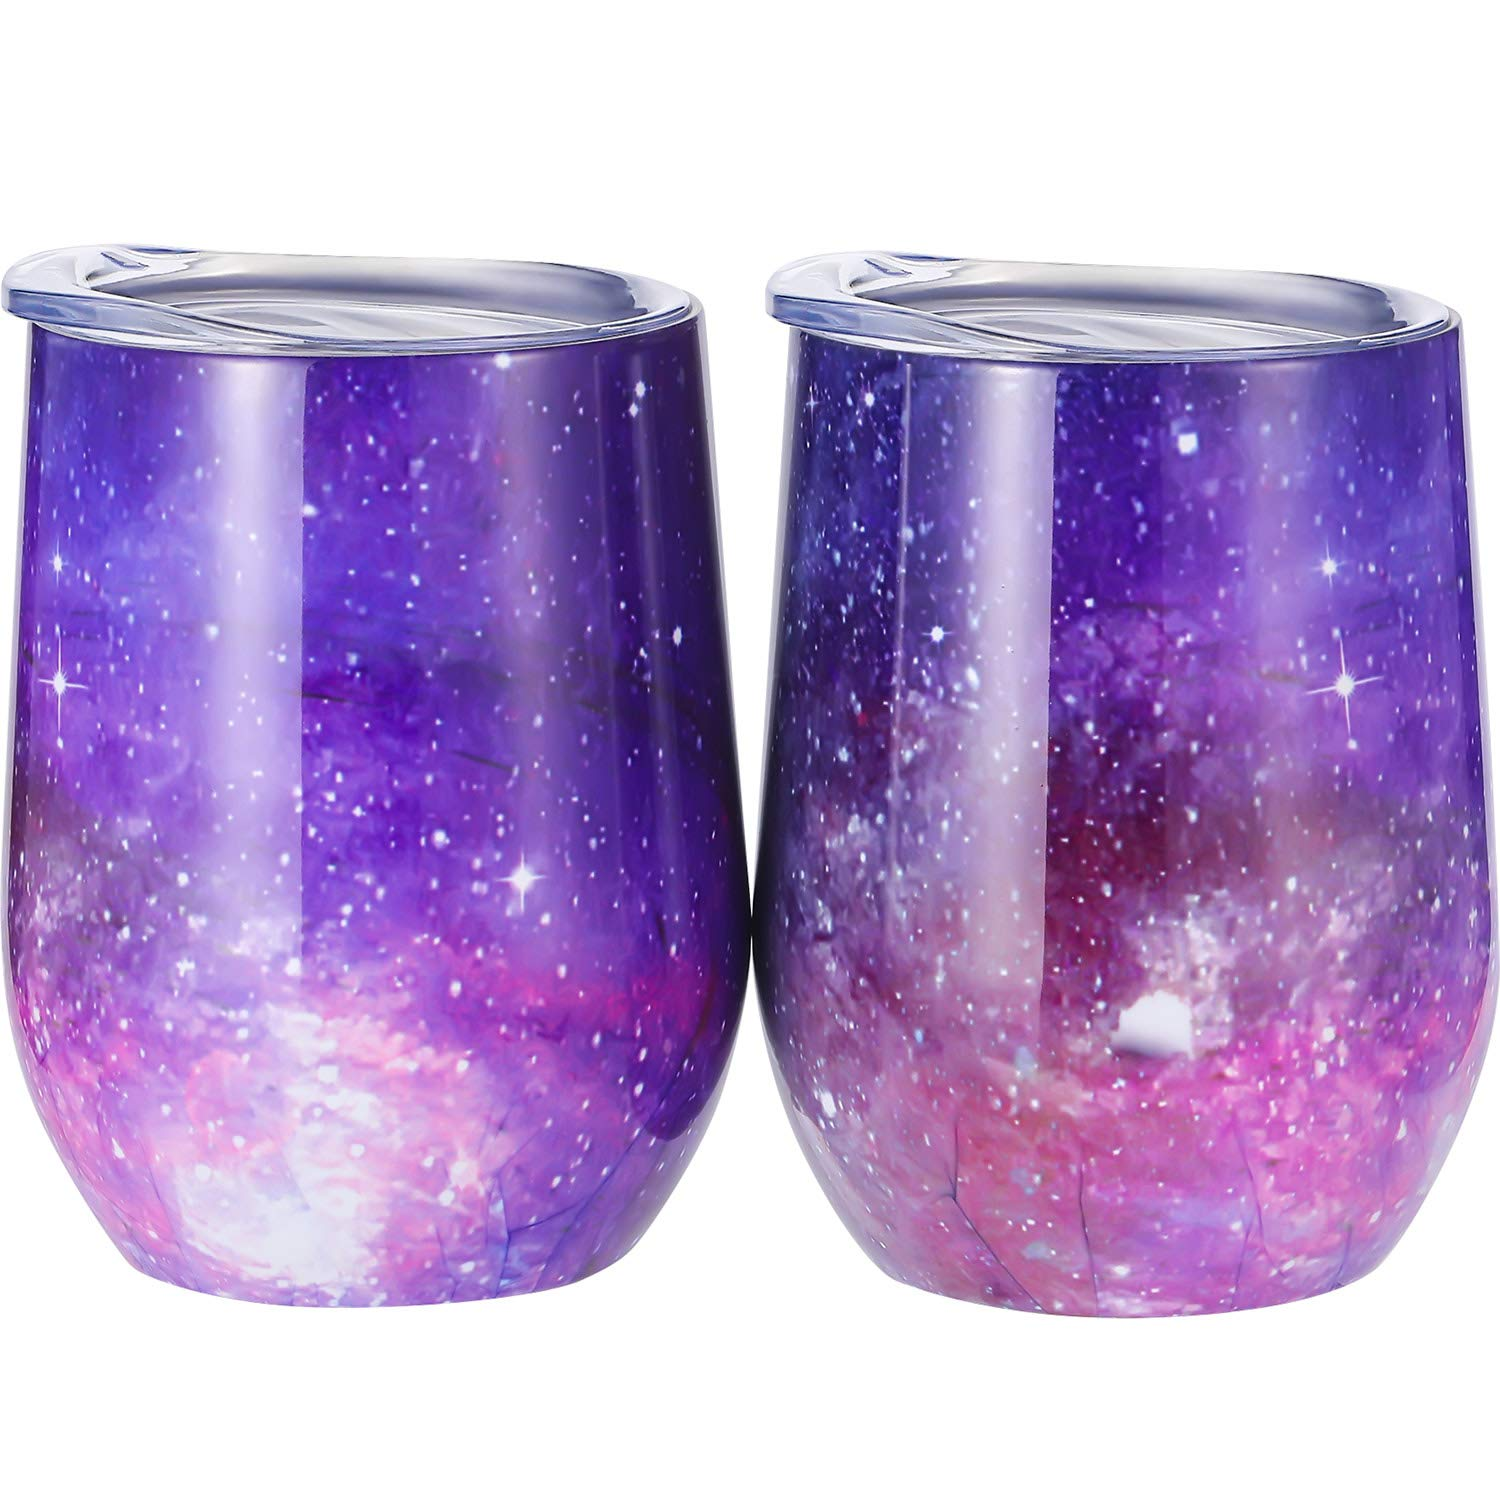 Skylety 12 oz Double-insulated Stemless Glass, Stainless Steel Tumbler Cup with Lids for Wine, Coffee, Drinks, Champagne, Cocktails, 2 Sets (Starry Purple)